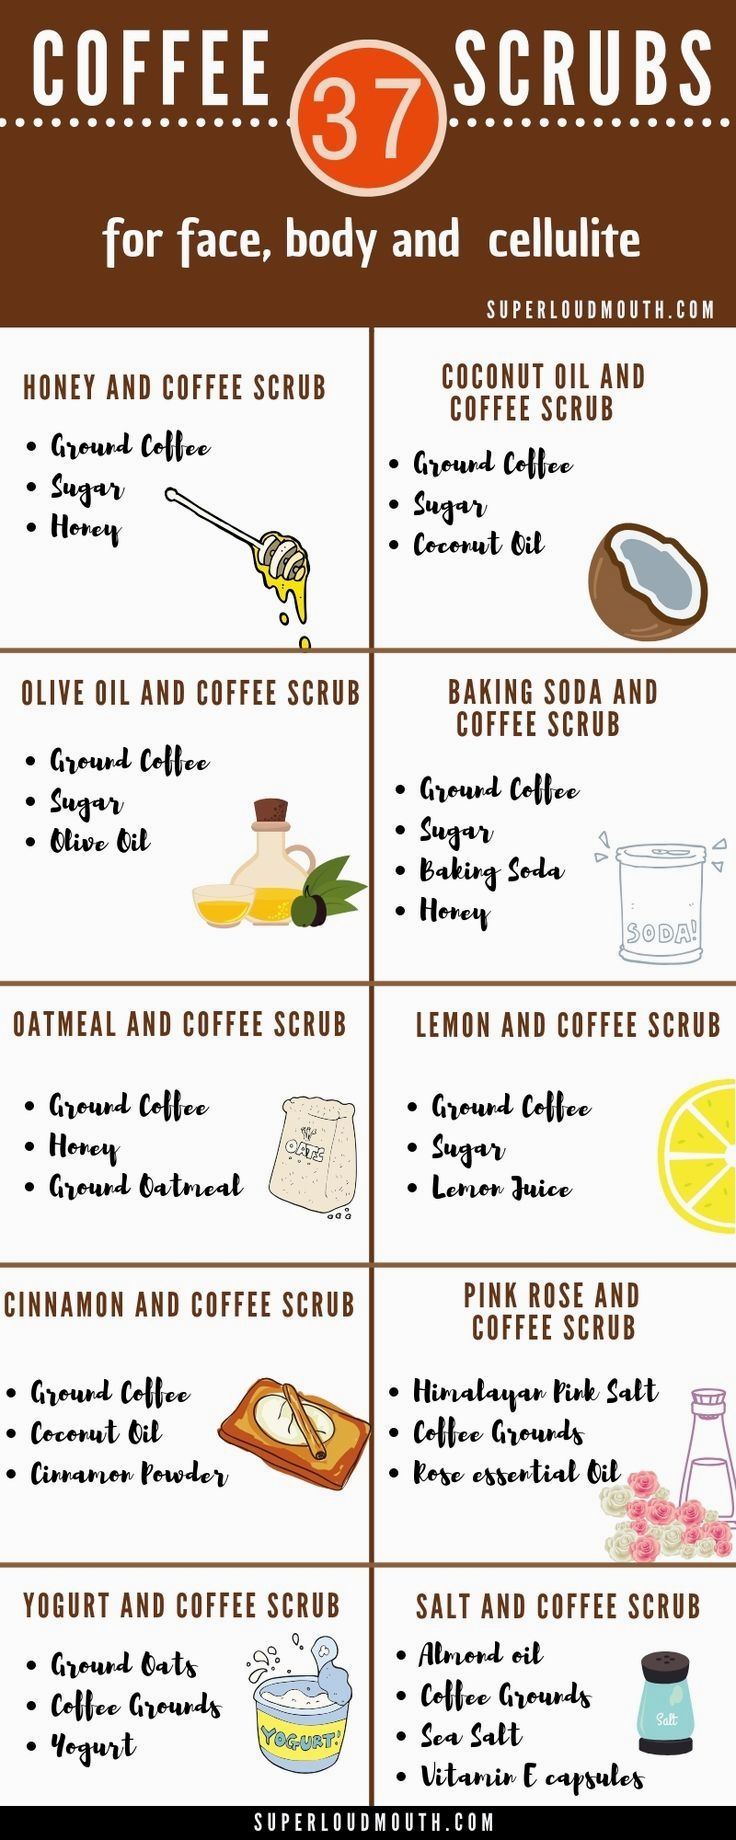 Coffee scrub has many benefits from exfoliating the